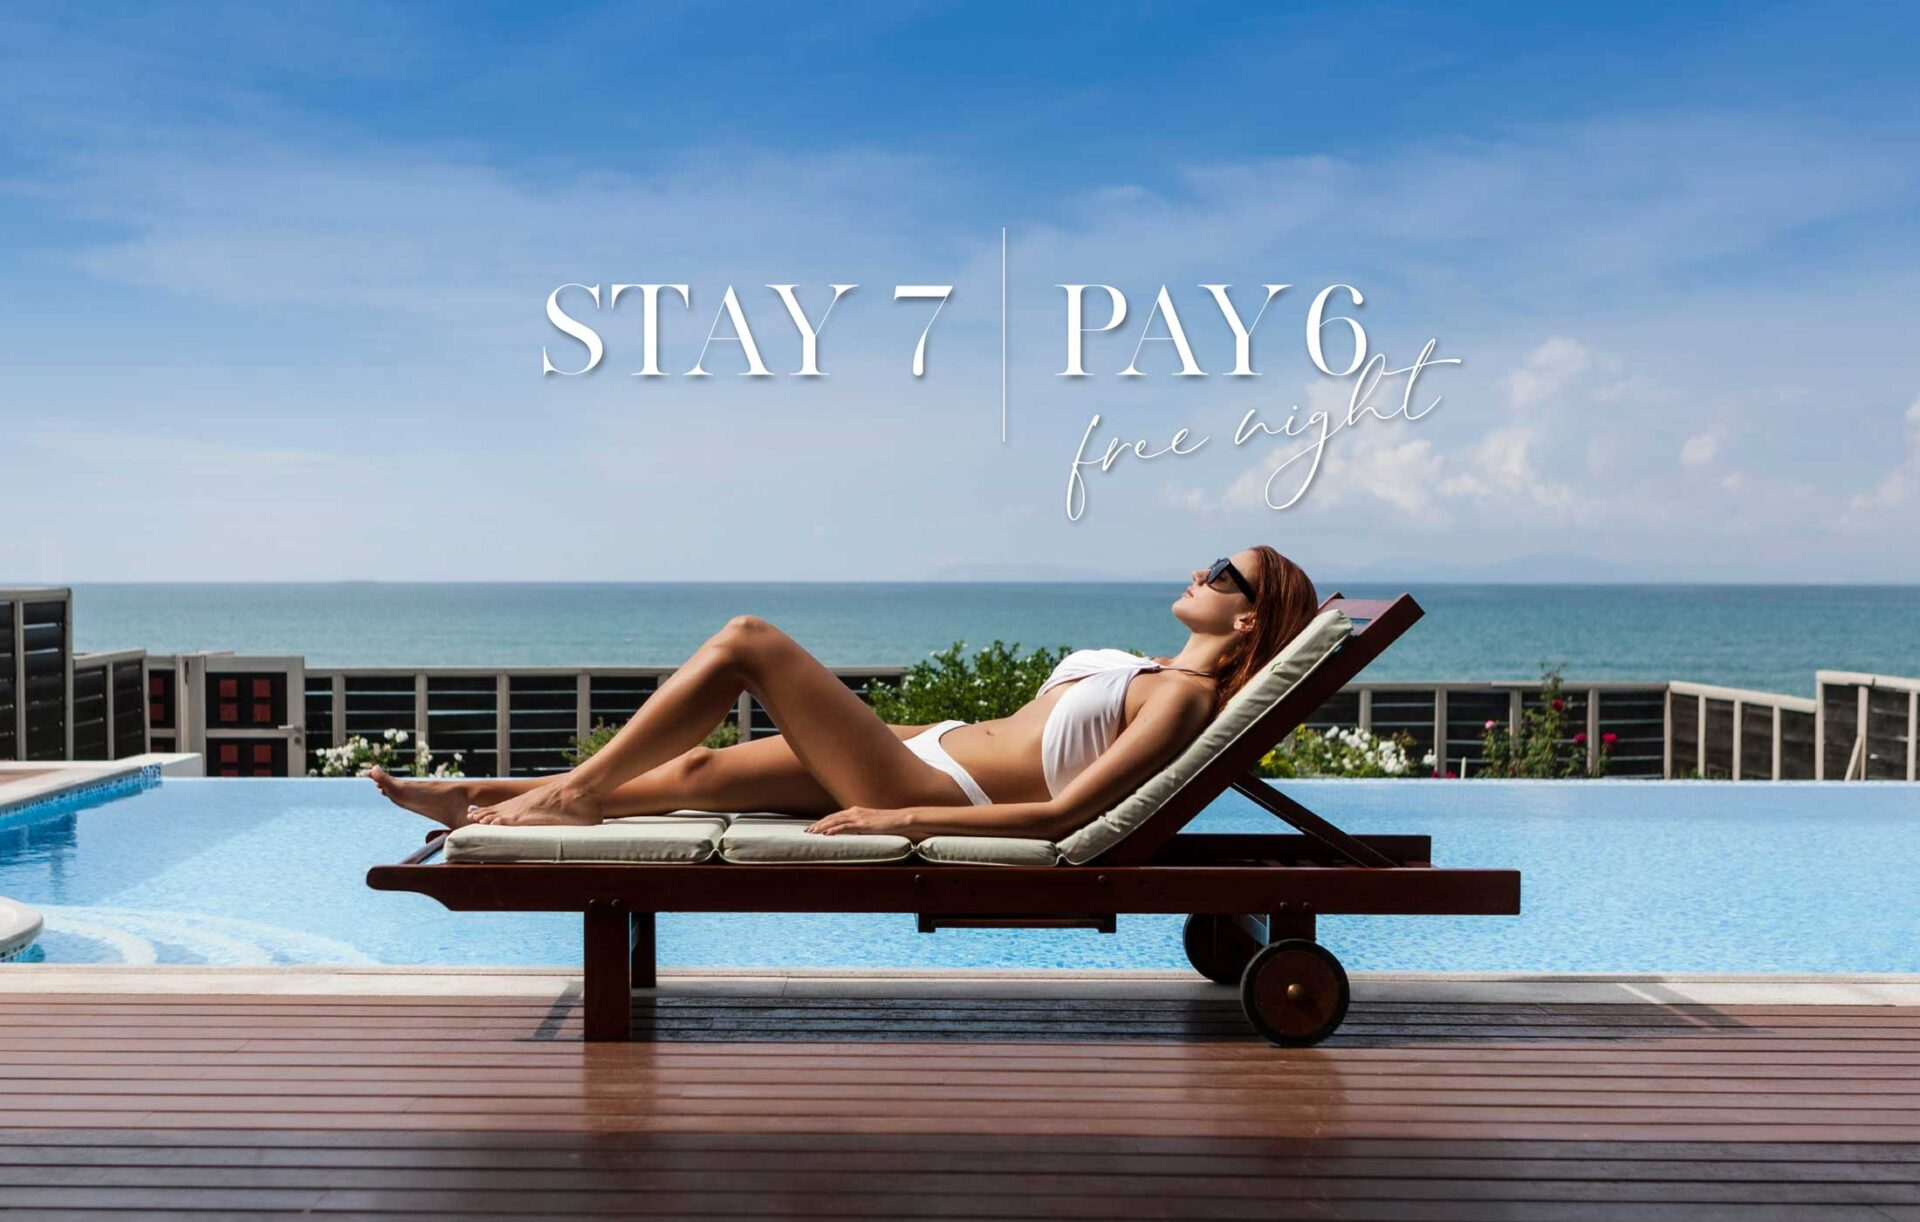 Stay 7 nights pay 6